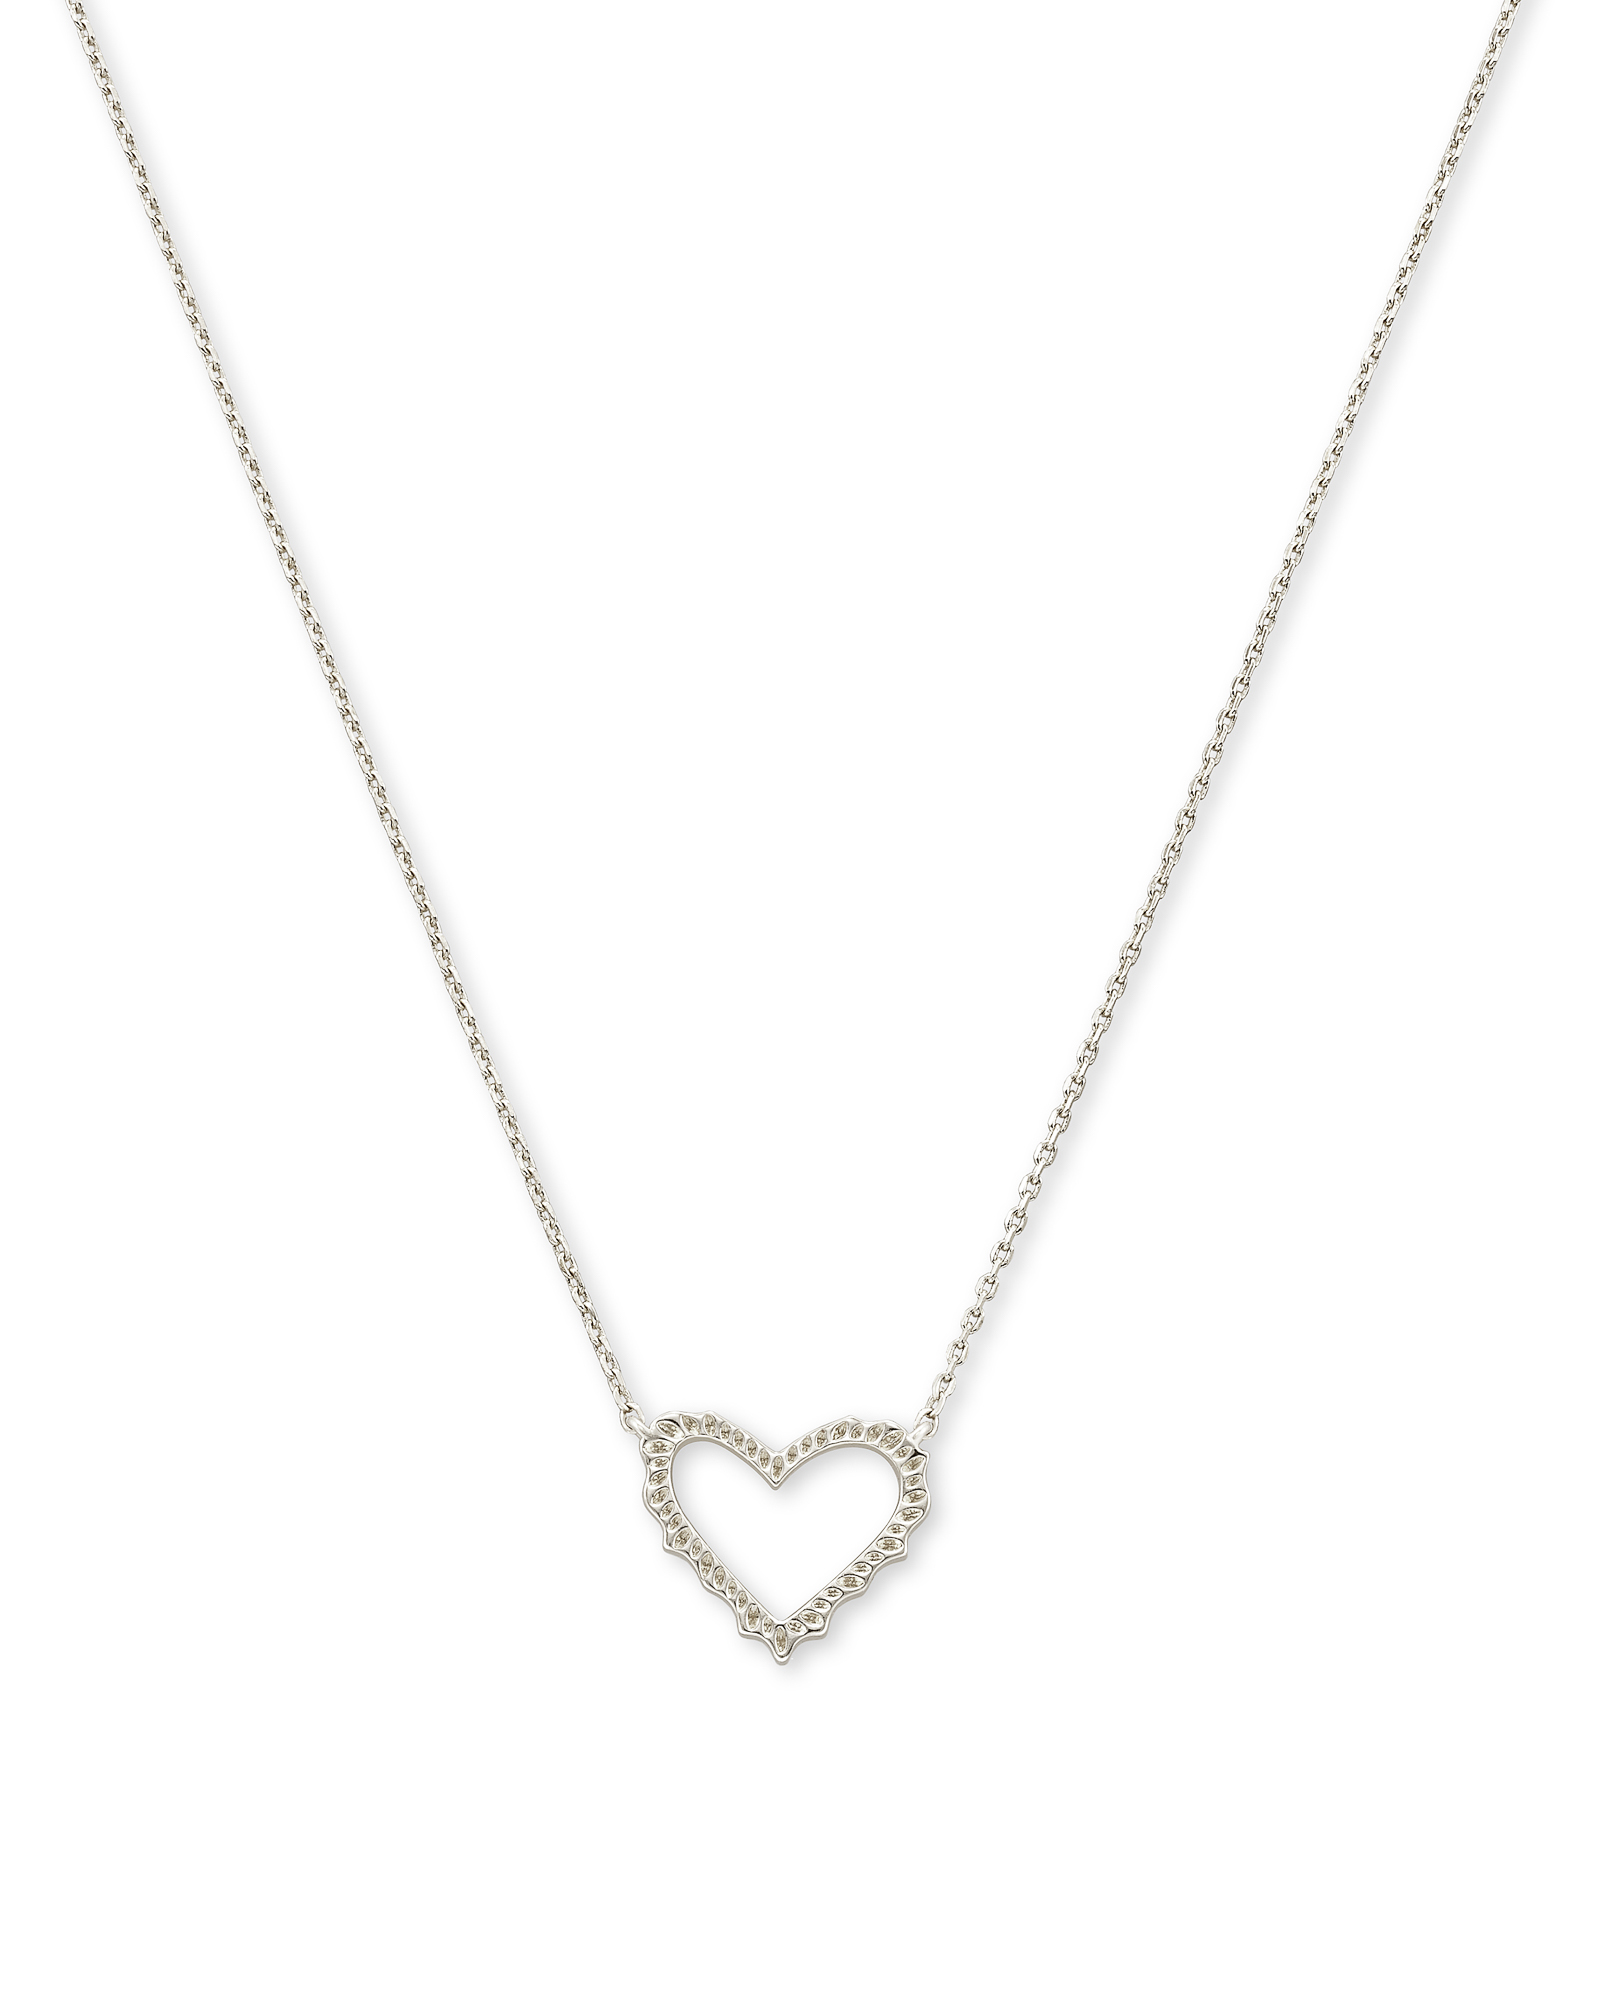 Sophee Heart Small Pendant Necklace in Silver